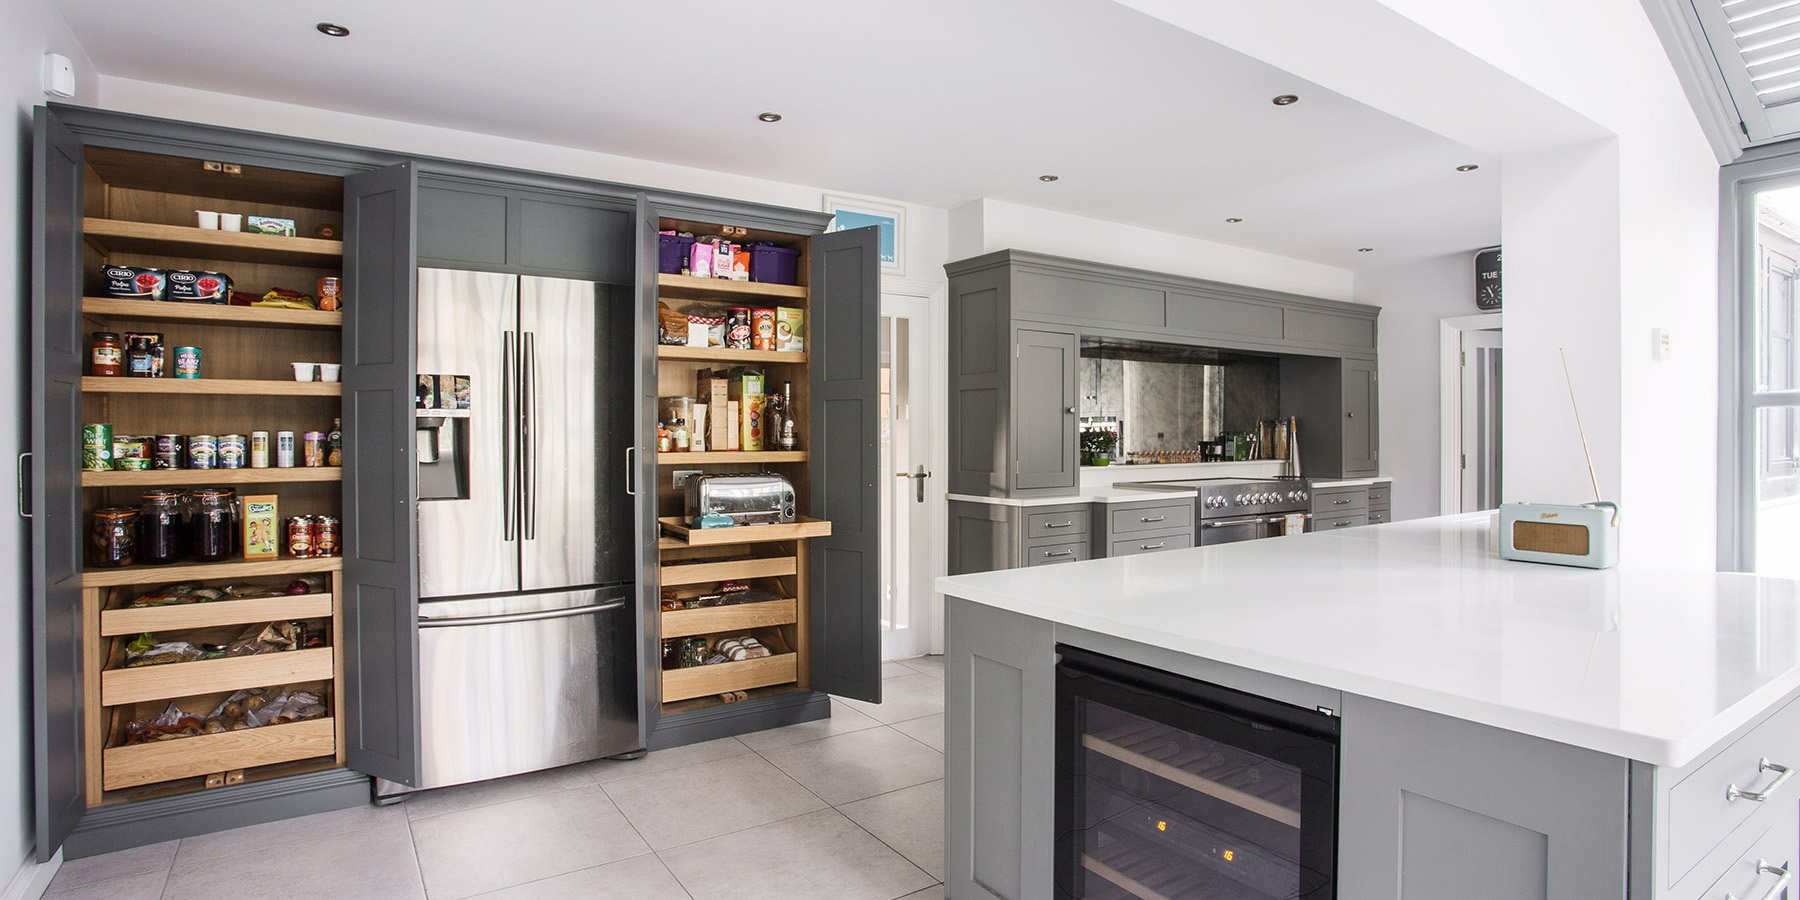 Burlanes | Bespoke, handmade kitchen larders  - Burlanes design and handmake kitchen larders to suit all kitchen styles, sizes and dimensions.